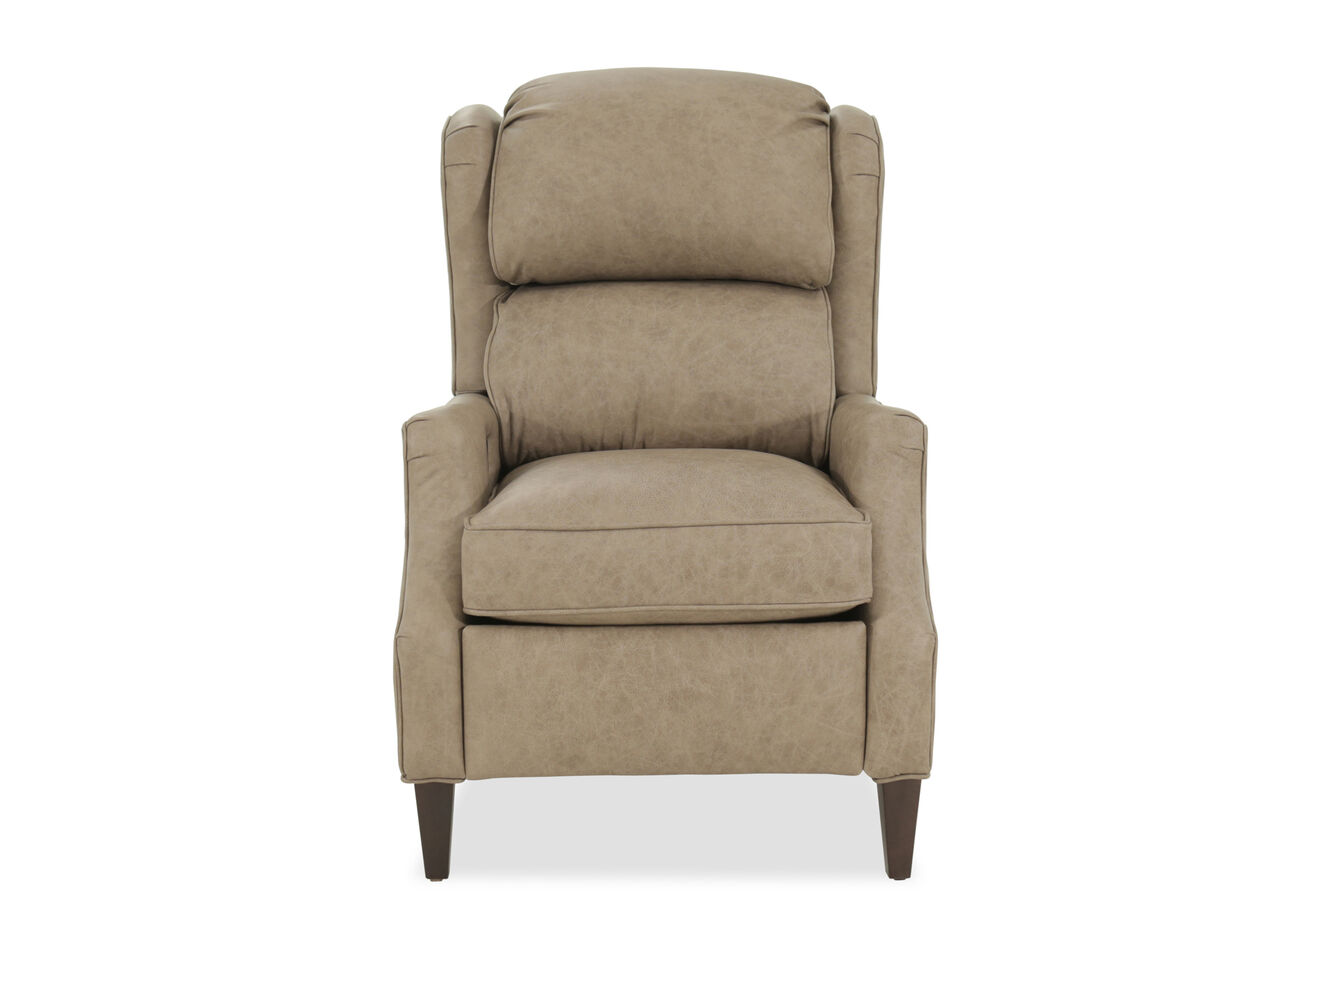 100 Chair Aaron Reclining Fabric Accent Luxury Accent Chairs With Arms Fresh Inmunoanalisis